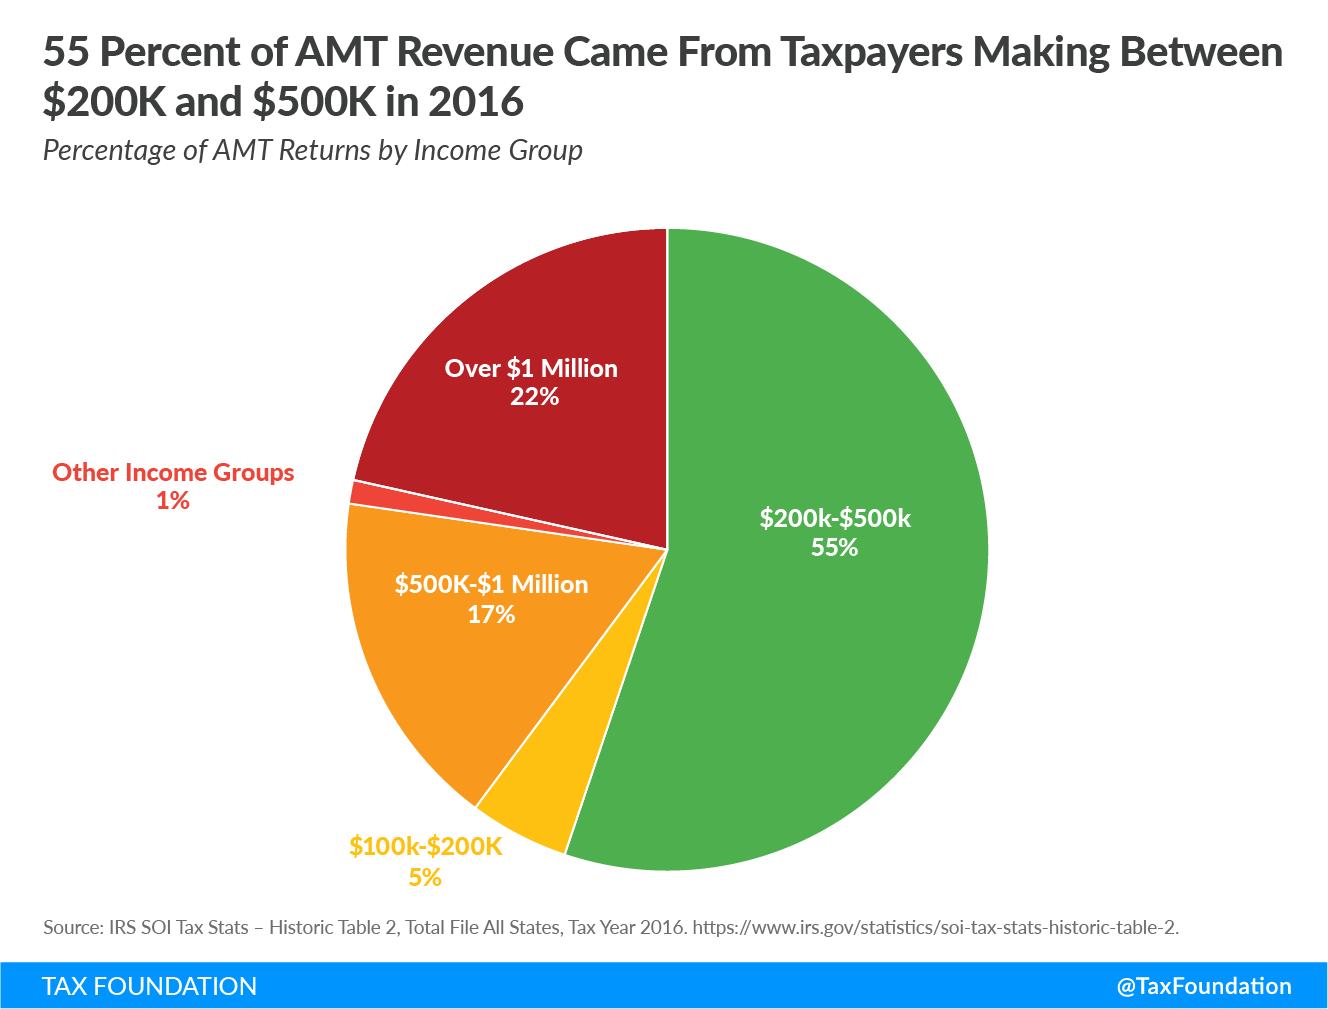 55% of AMT revenue came from taxpayers making between $200k and $500k in 2016